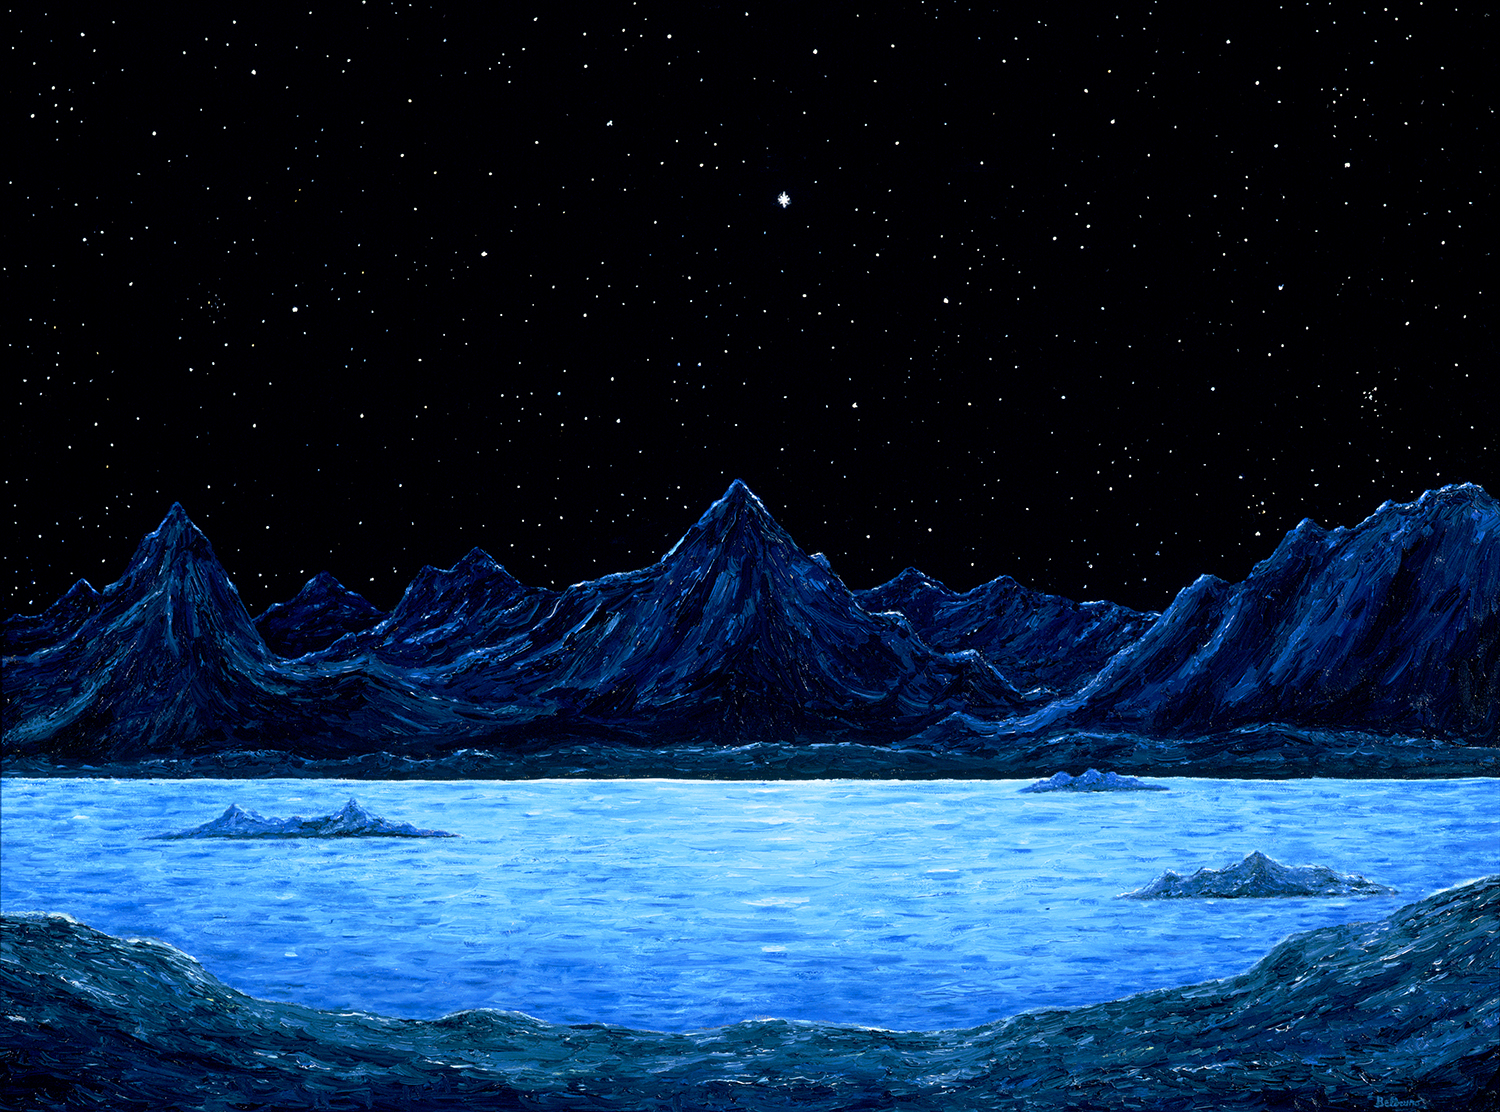 Starscape Over Mountains on Another World